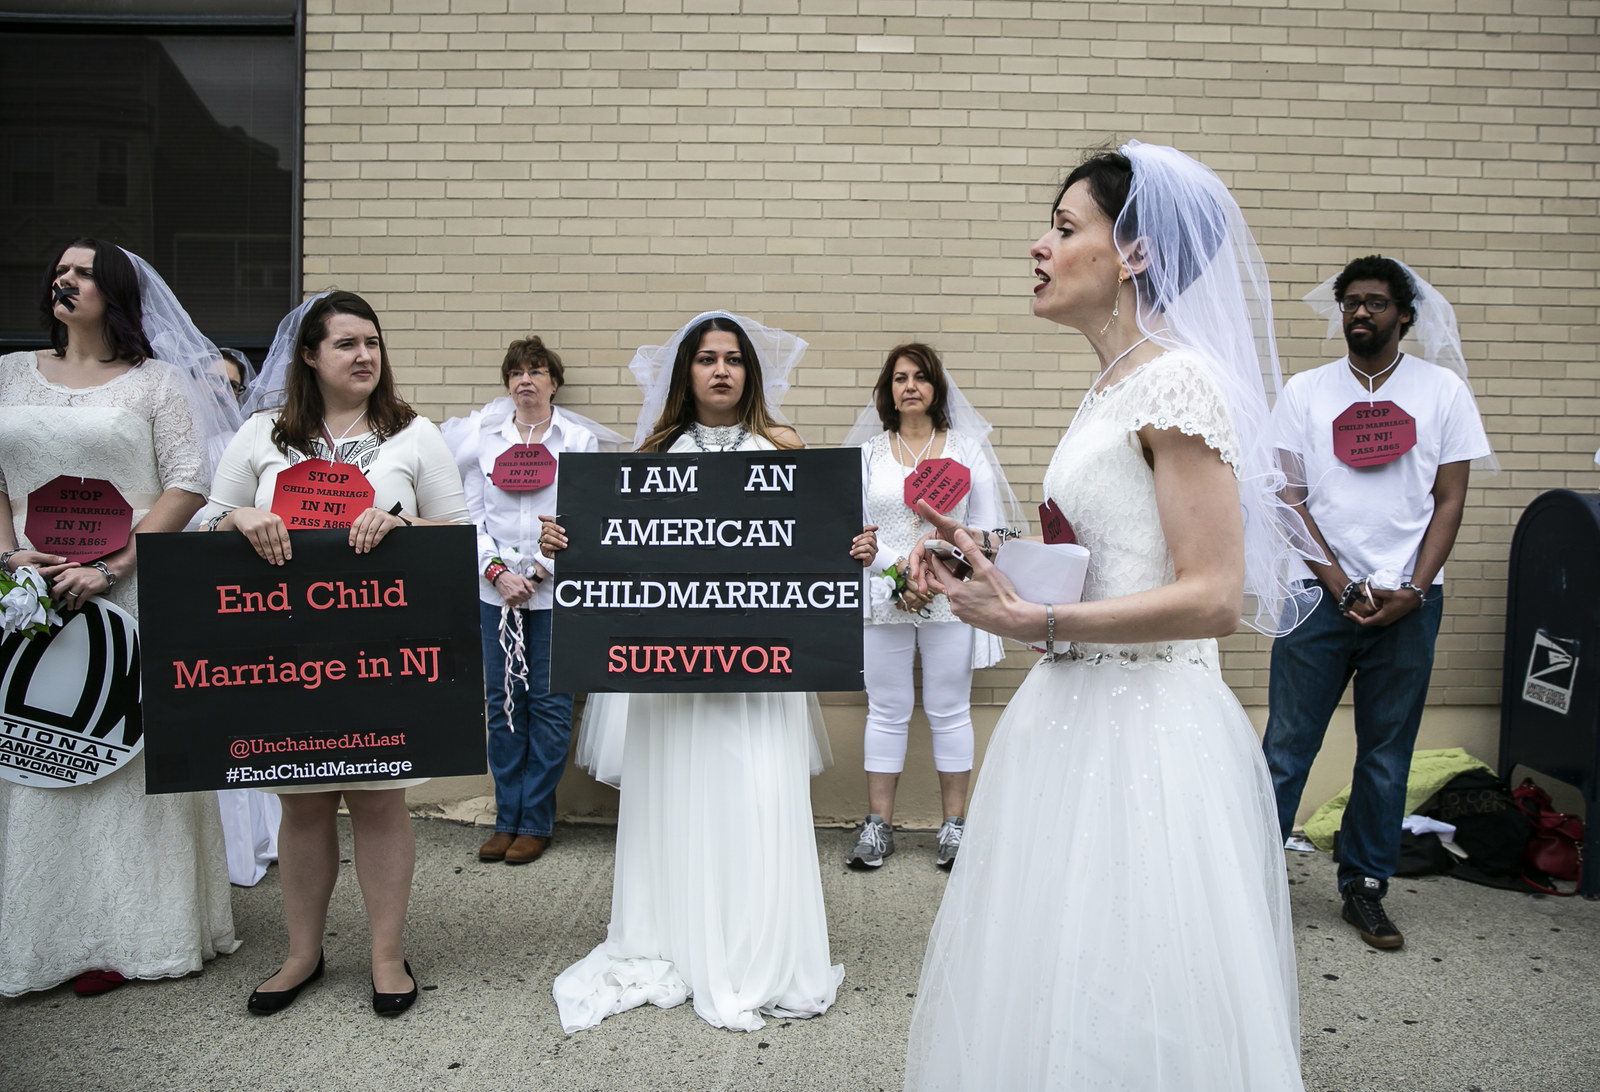 NJ Supreme Court Agrees to Hear Marriage Case